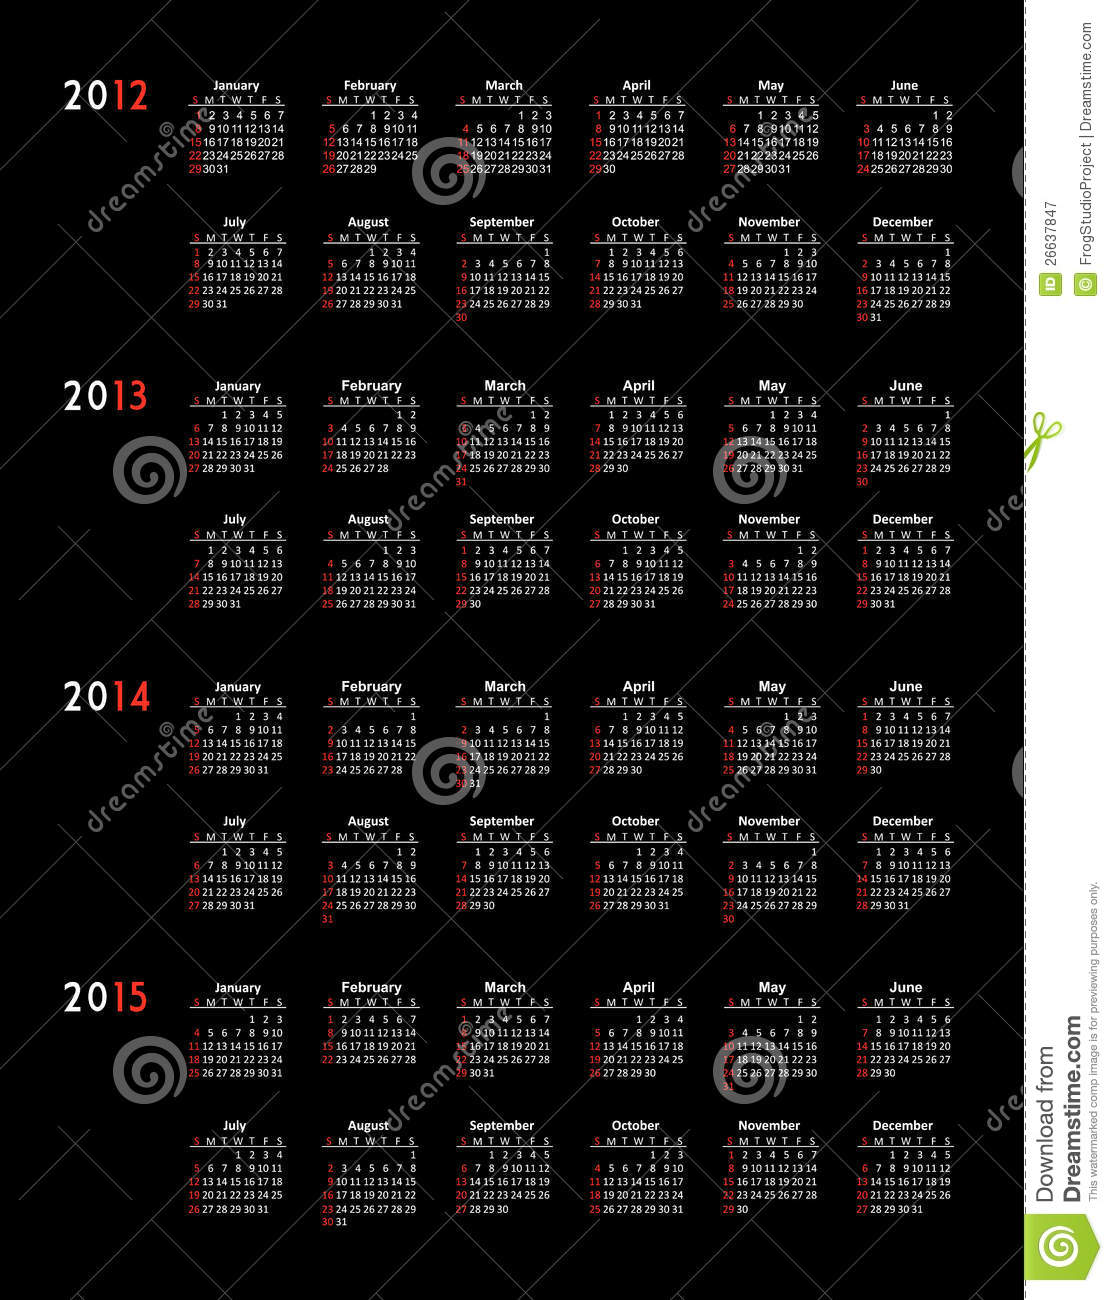 kalender 2012 2013 2014 2015 royalty vrije stock fotografie beeld 26637847. Black Bedroom Furniture Sets. Home Design Ideas